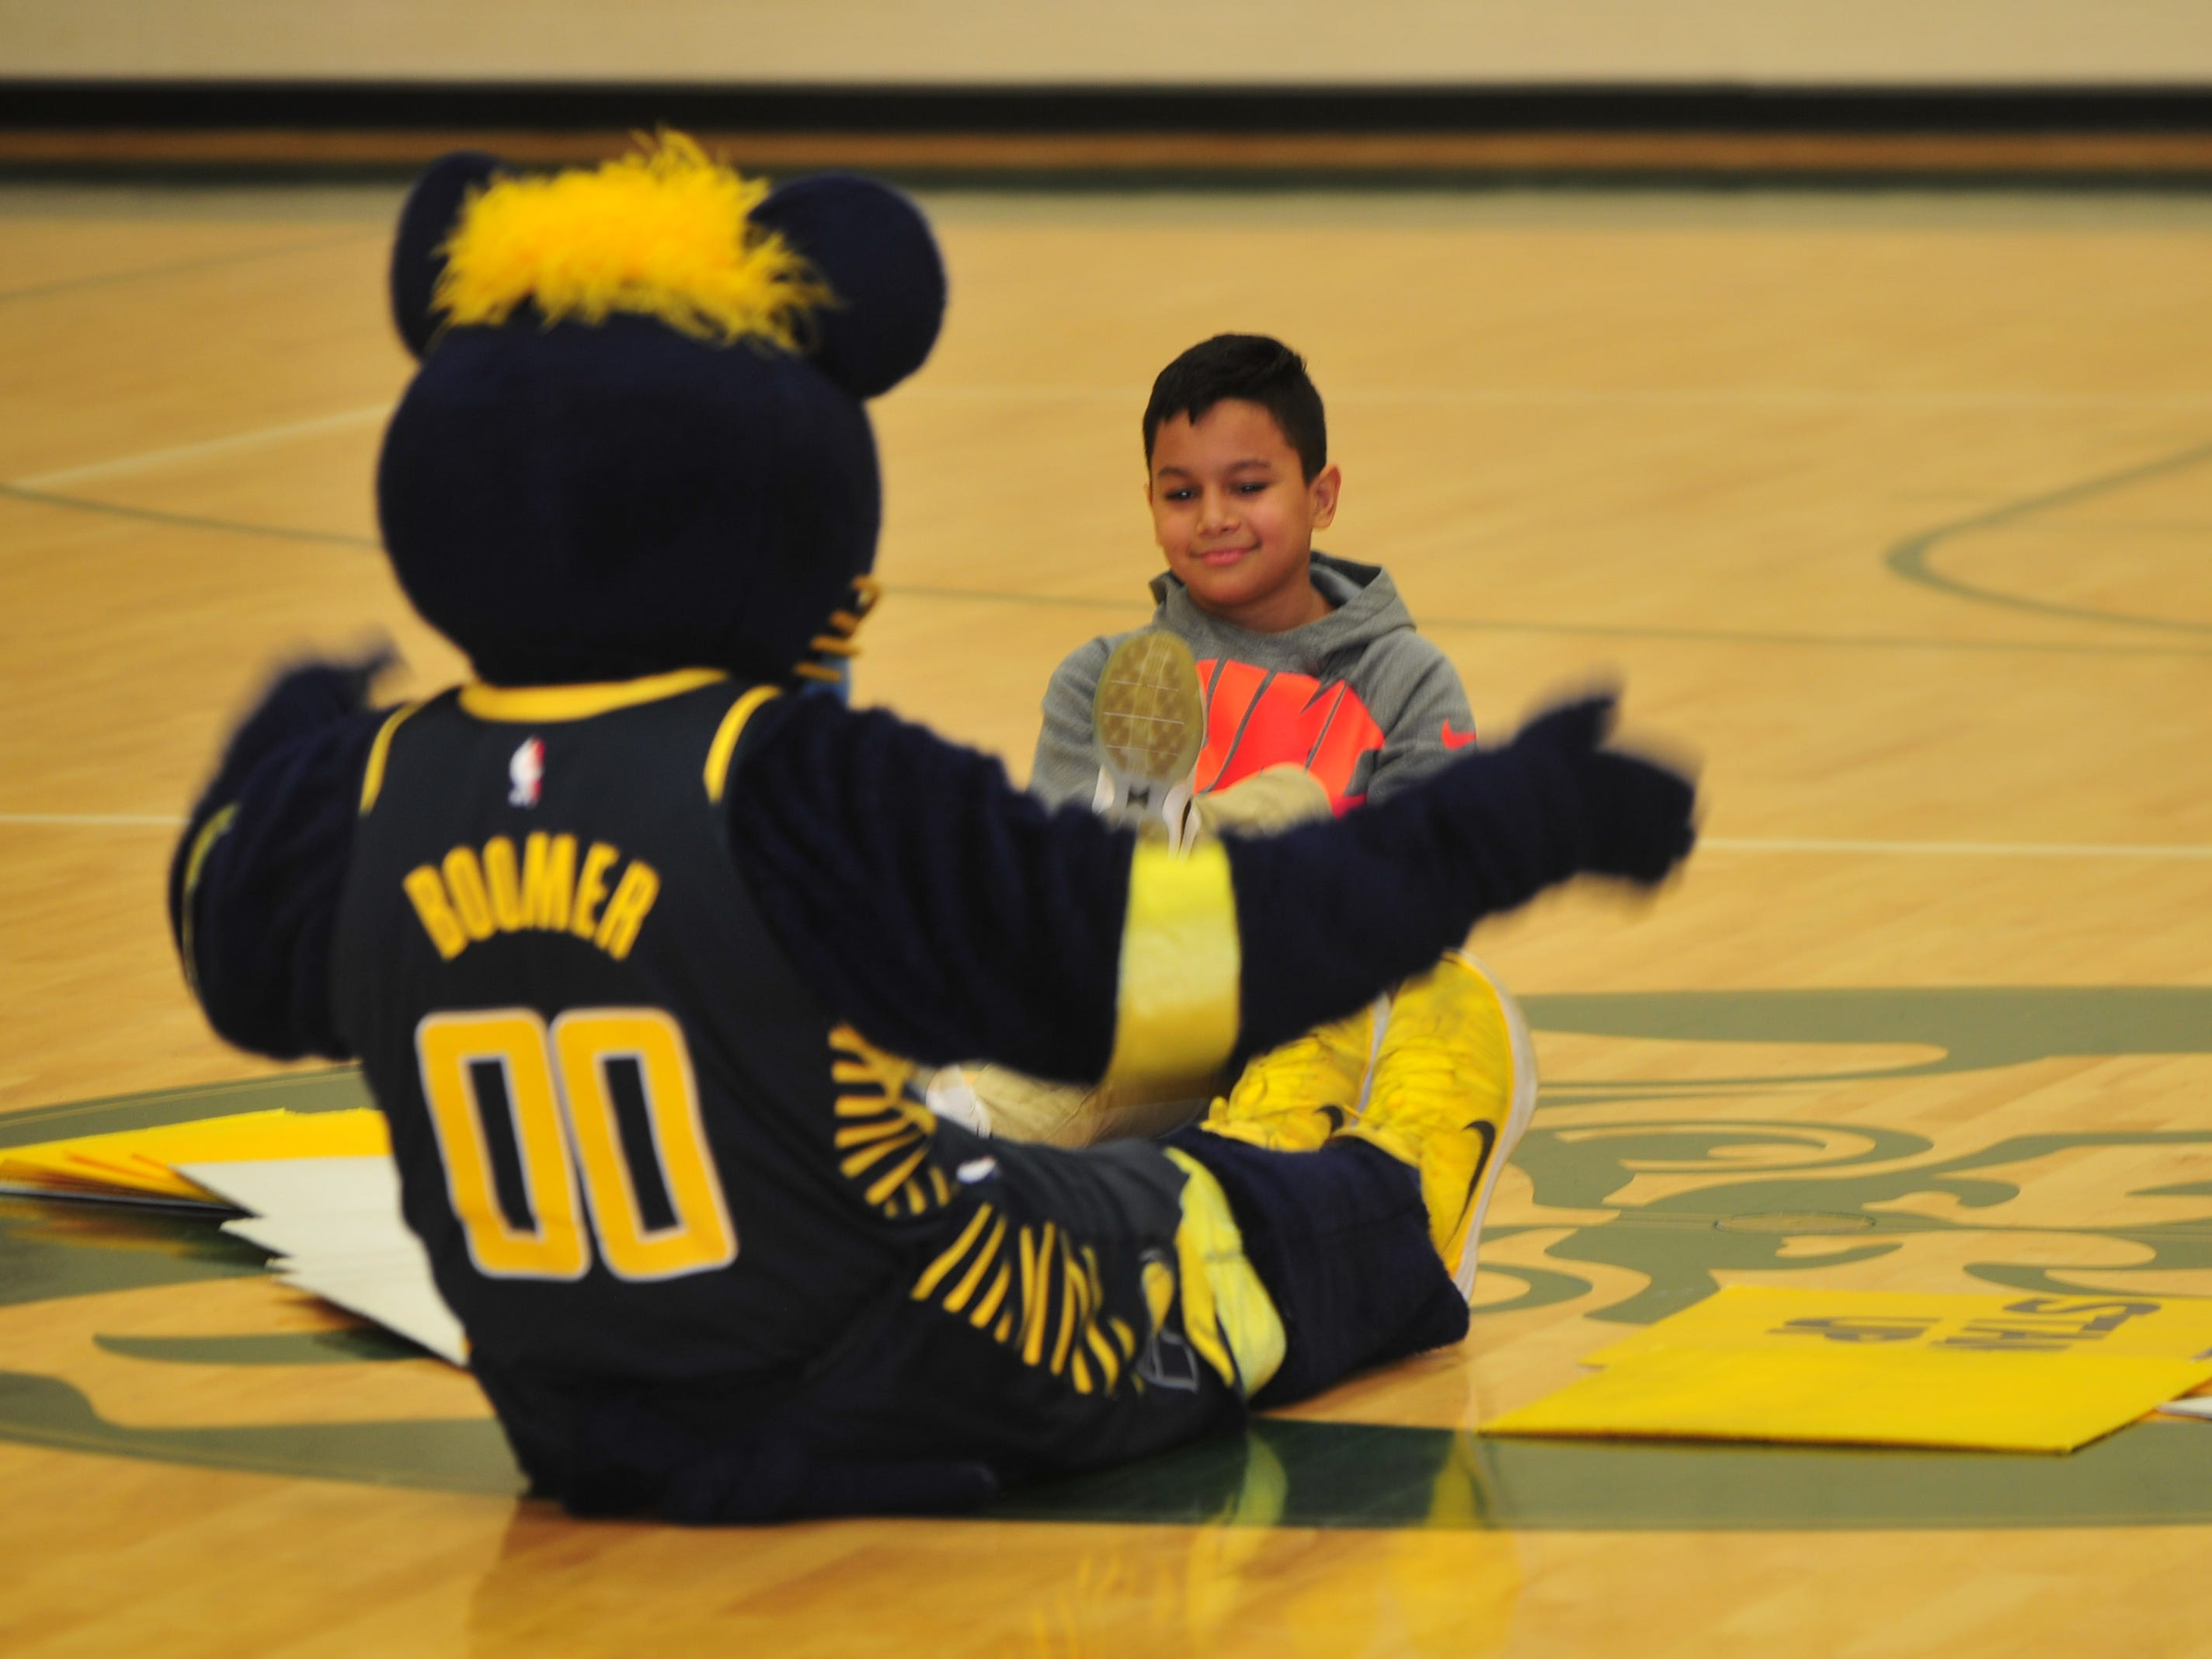 Boomer and a volunteer exercise on the floor as Boomer encourages Dennis Intermediate School students to maintain physical fitness.